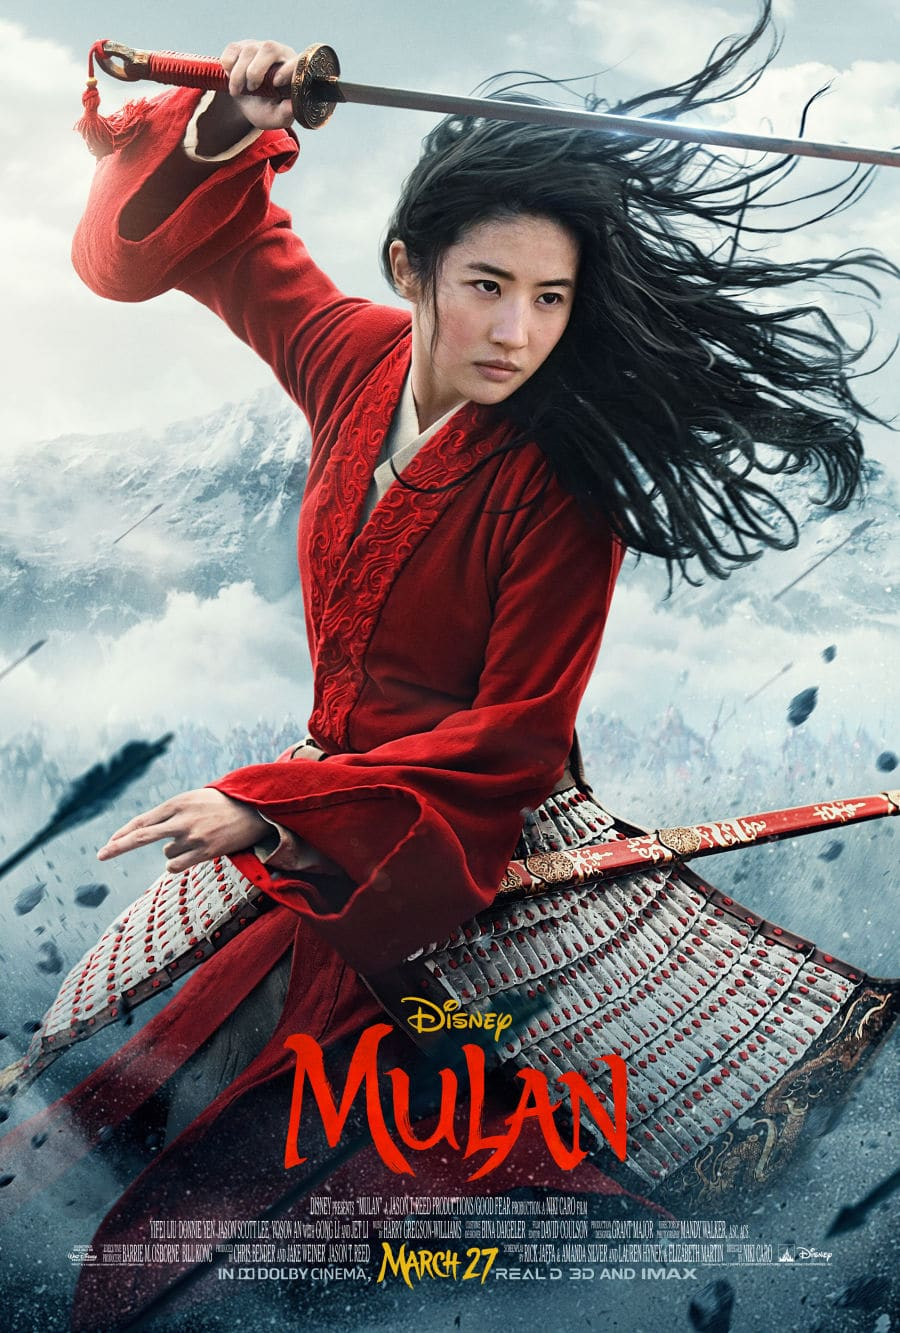 Mulan movie poster in Mulan parents guide post